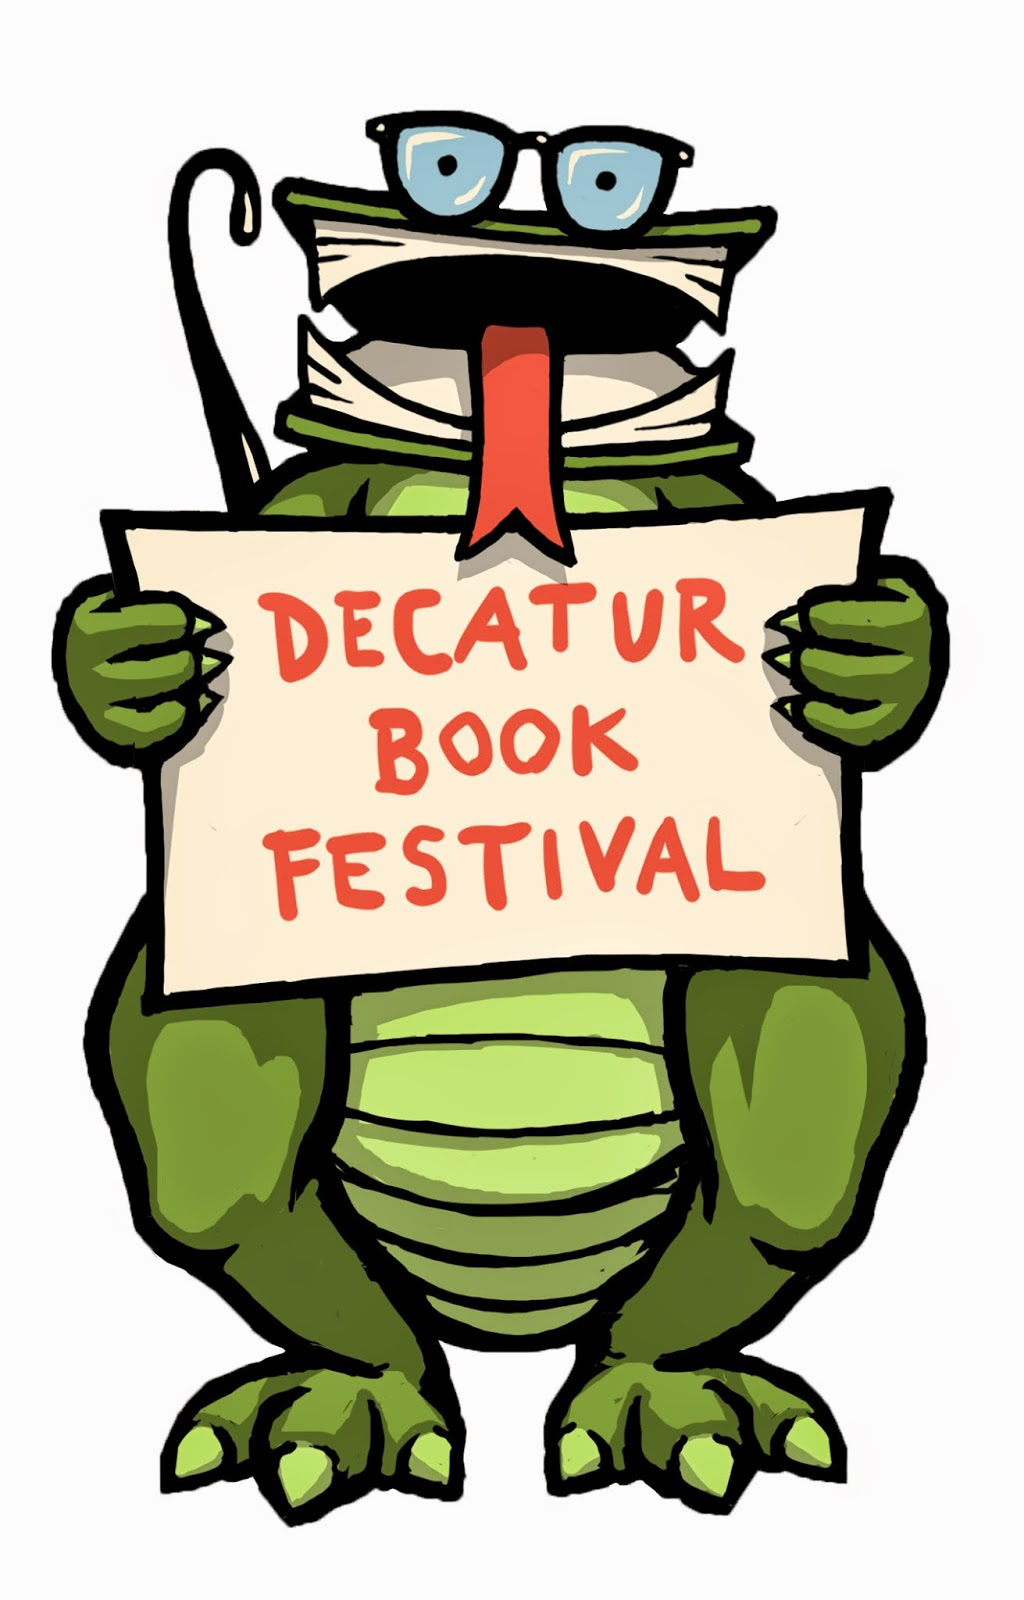 Decatur Book Festival bookzilla everead